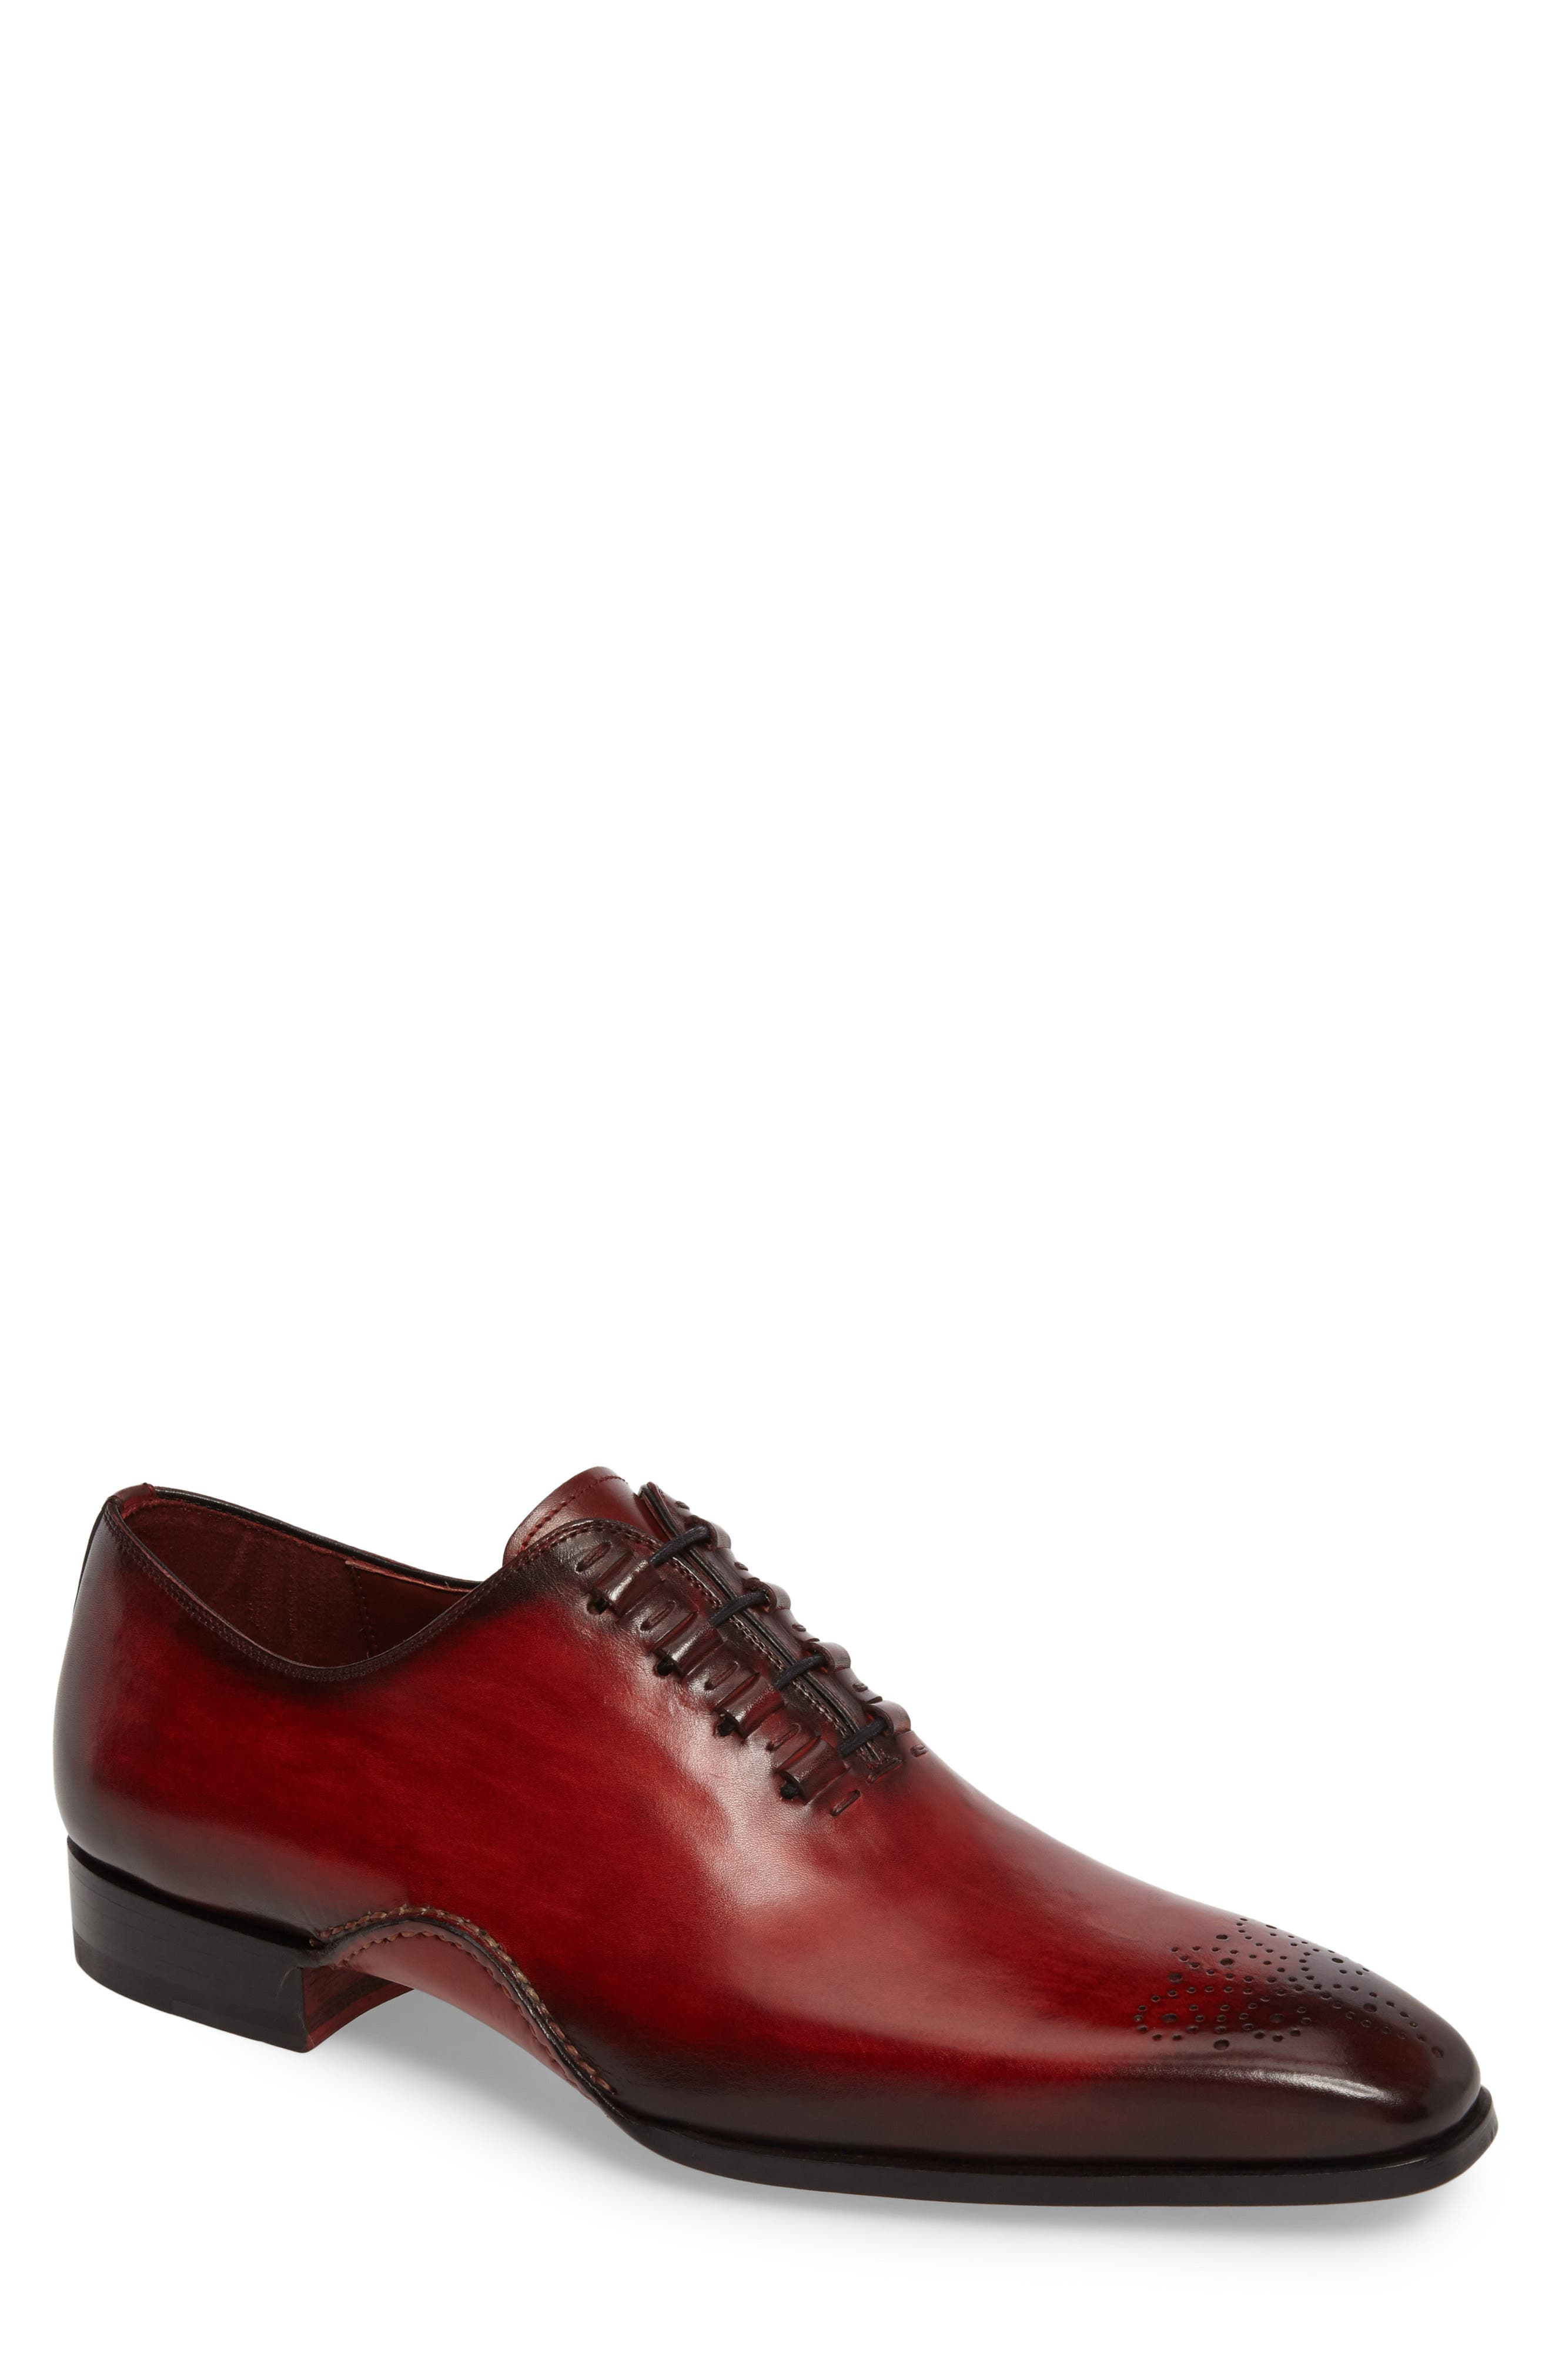 Josue Wholecut Oxford,                         Main,                         color, Red Leather